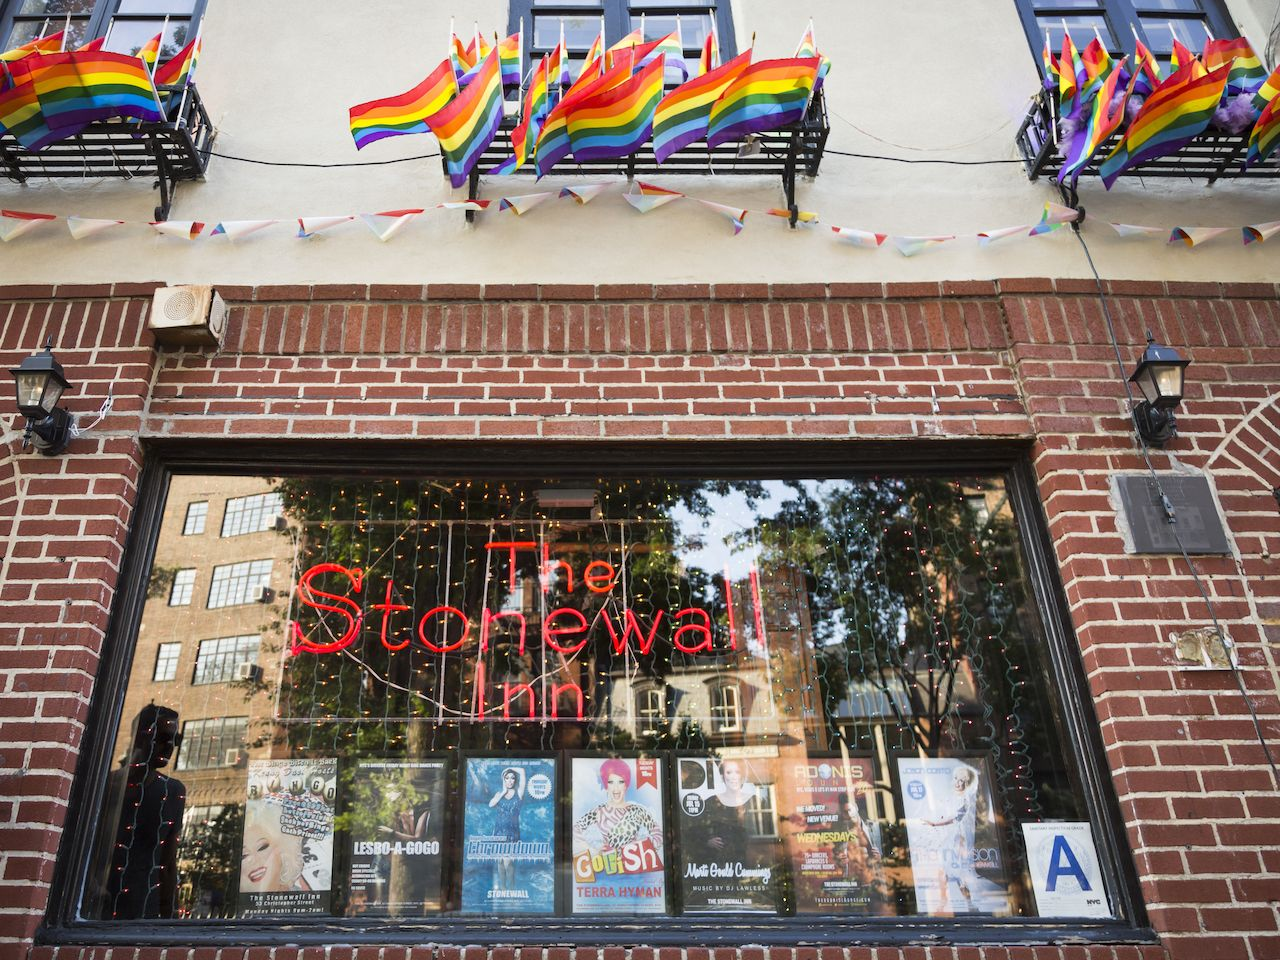 The Stonewall Inn